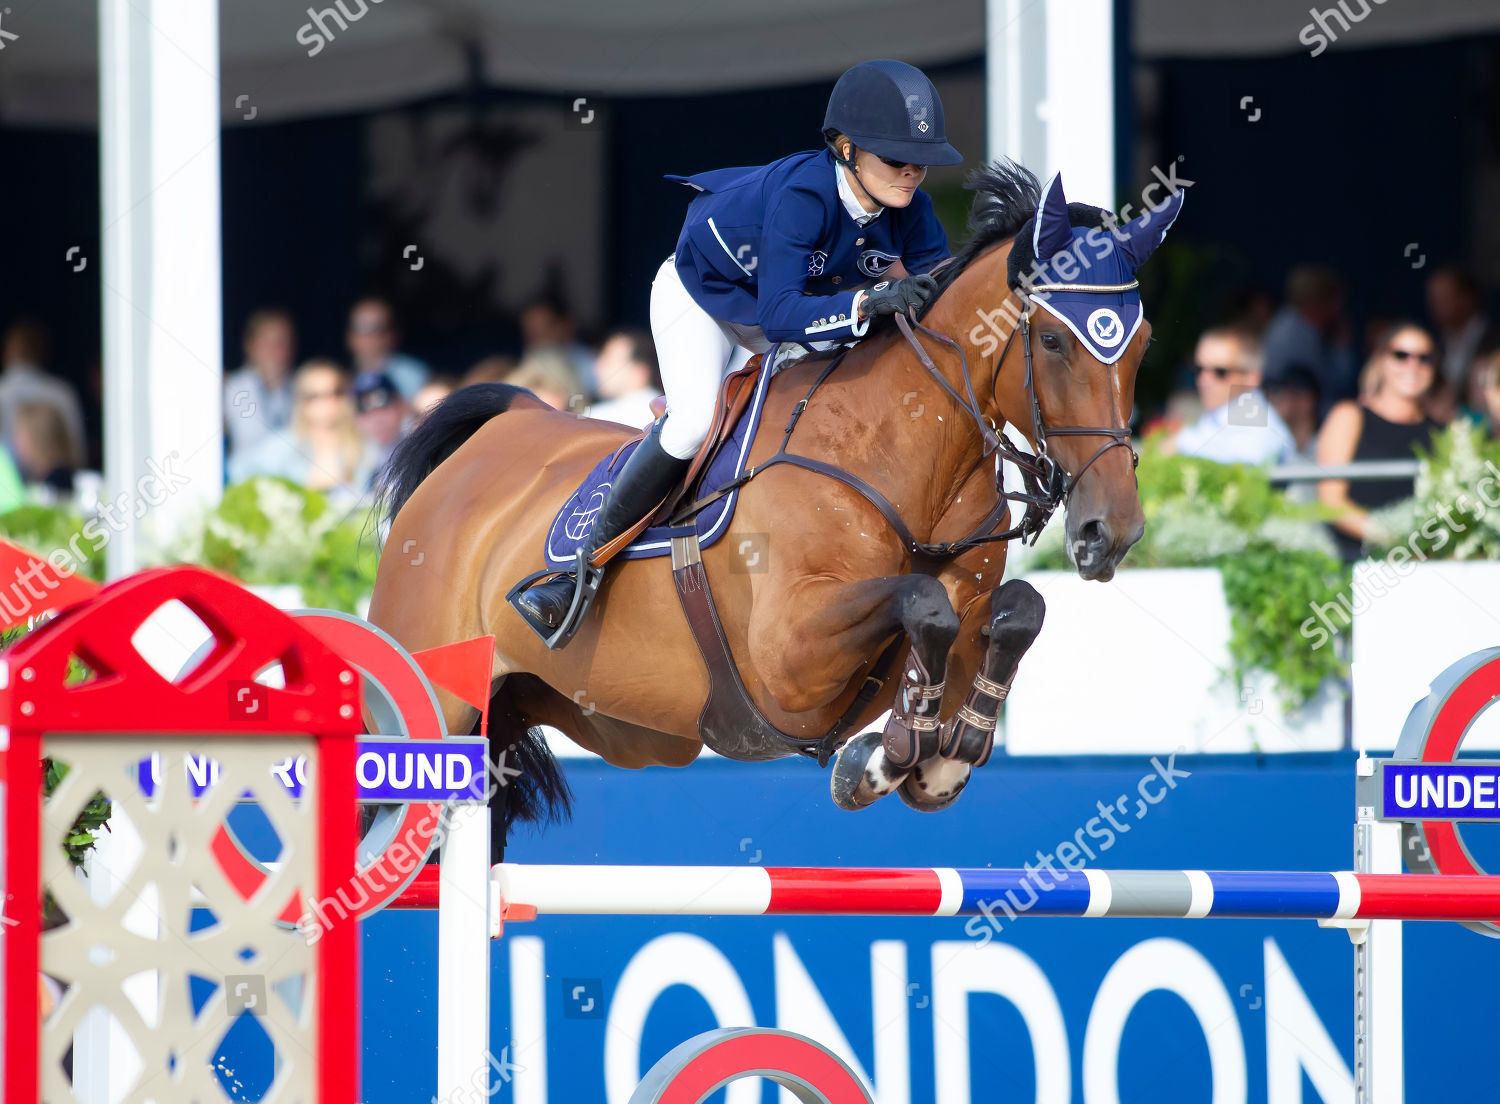 Stock photo of Longines Global Champions Tour and Global Champions League, Royal Hospital Chelsea, London, United Kingdom, 2nd August 2019